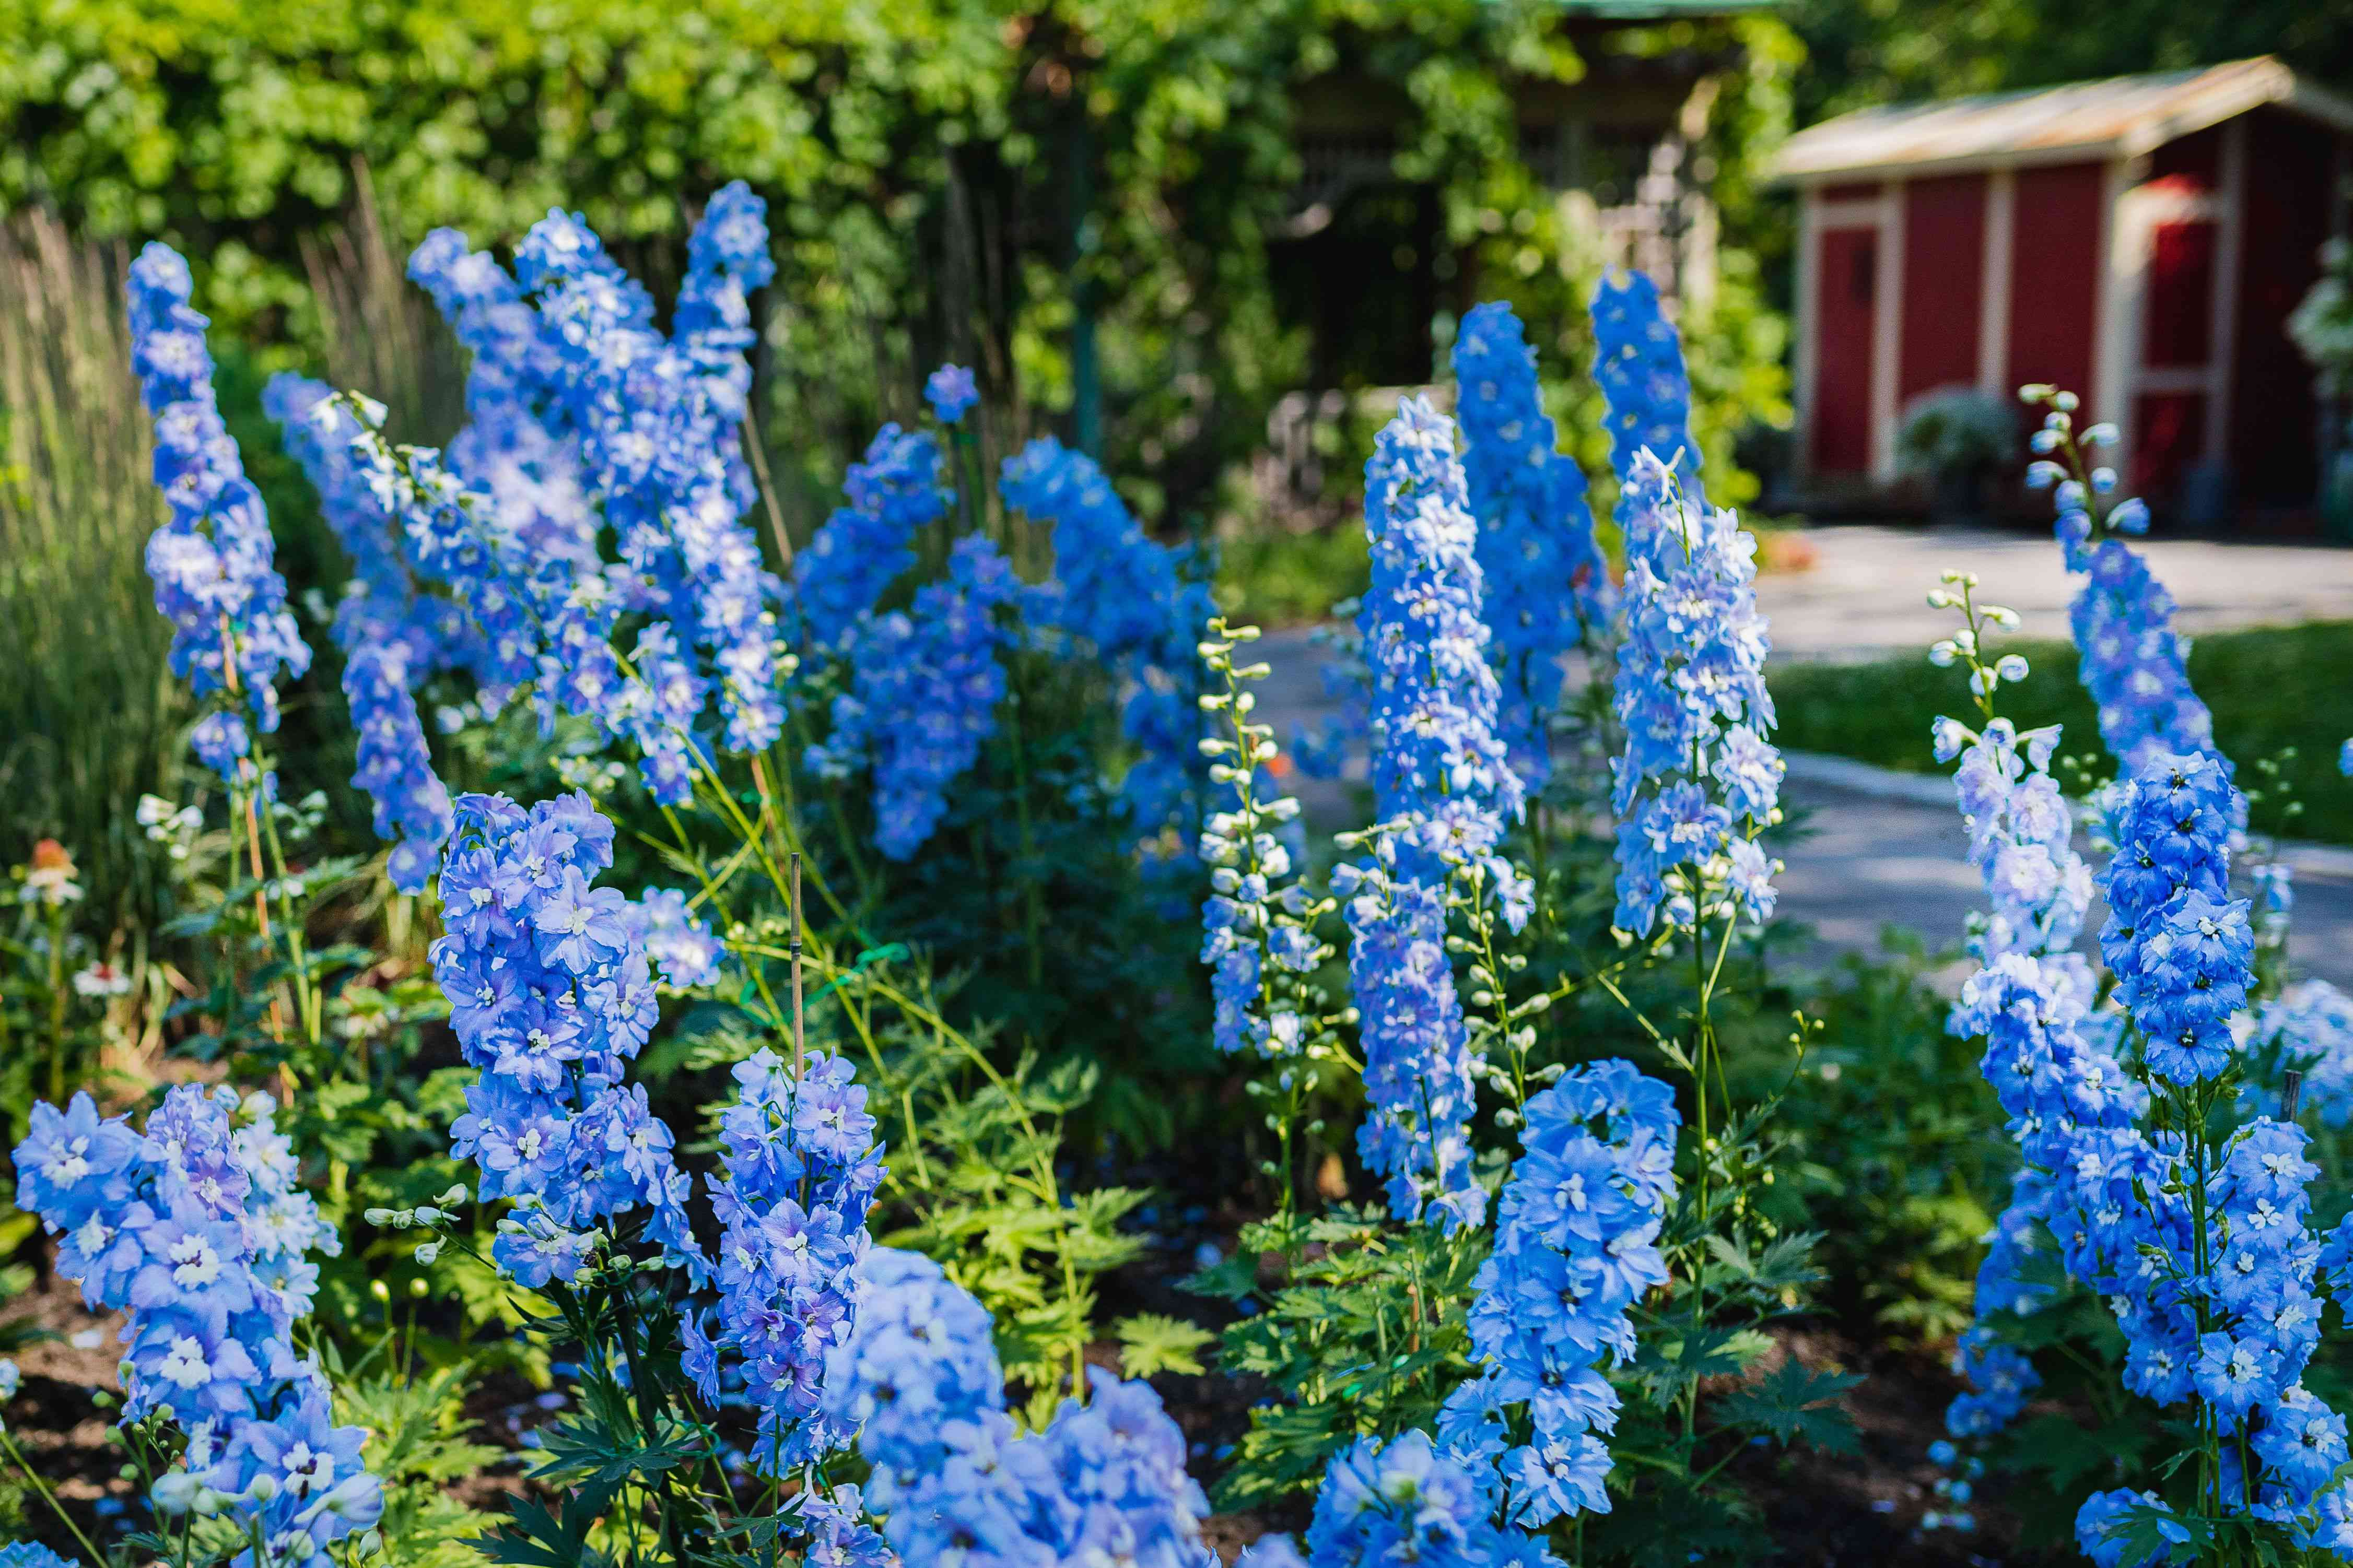 Delphinium plant with bright blue columnar spikes clustered with small blue flowers in garden